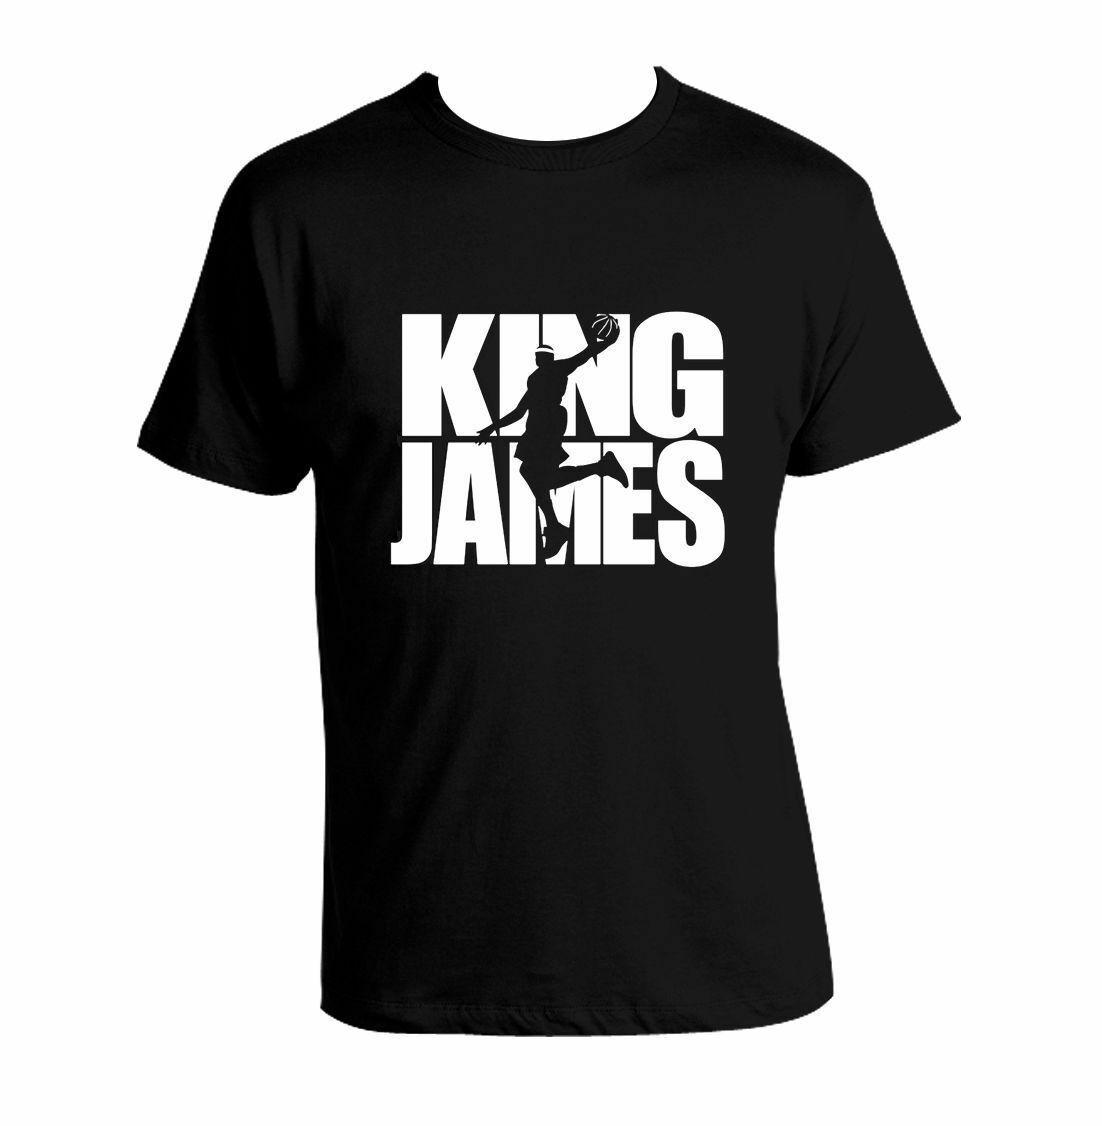 outlet store a6658 1a0d7 Lebron James King James T Shirt MVP ClevelandFunny free shipping Unisex  Casual Tshirt